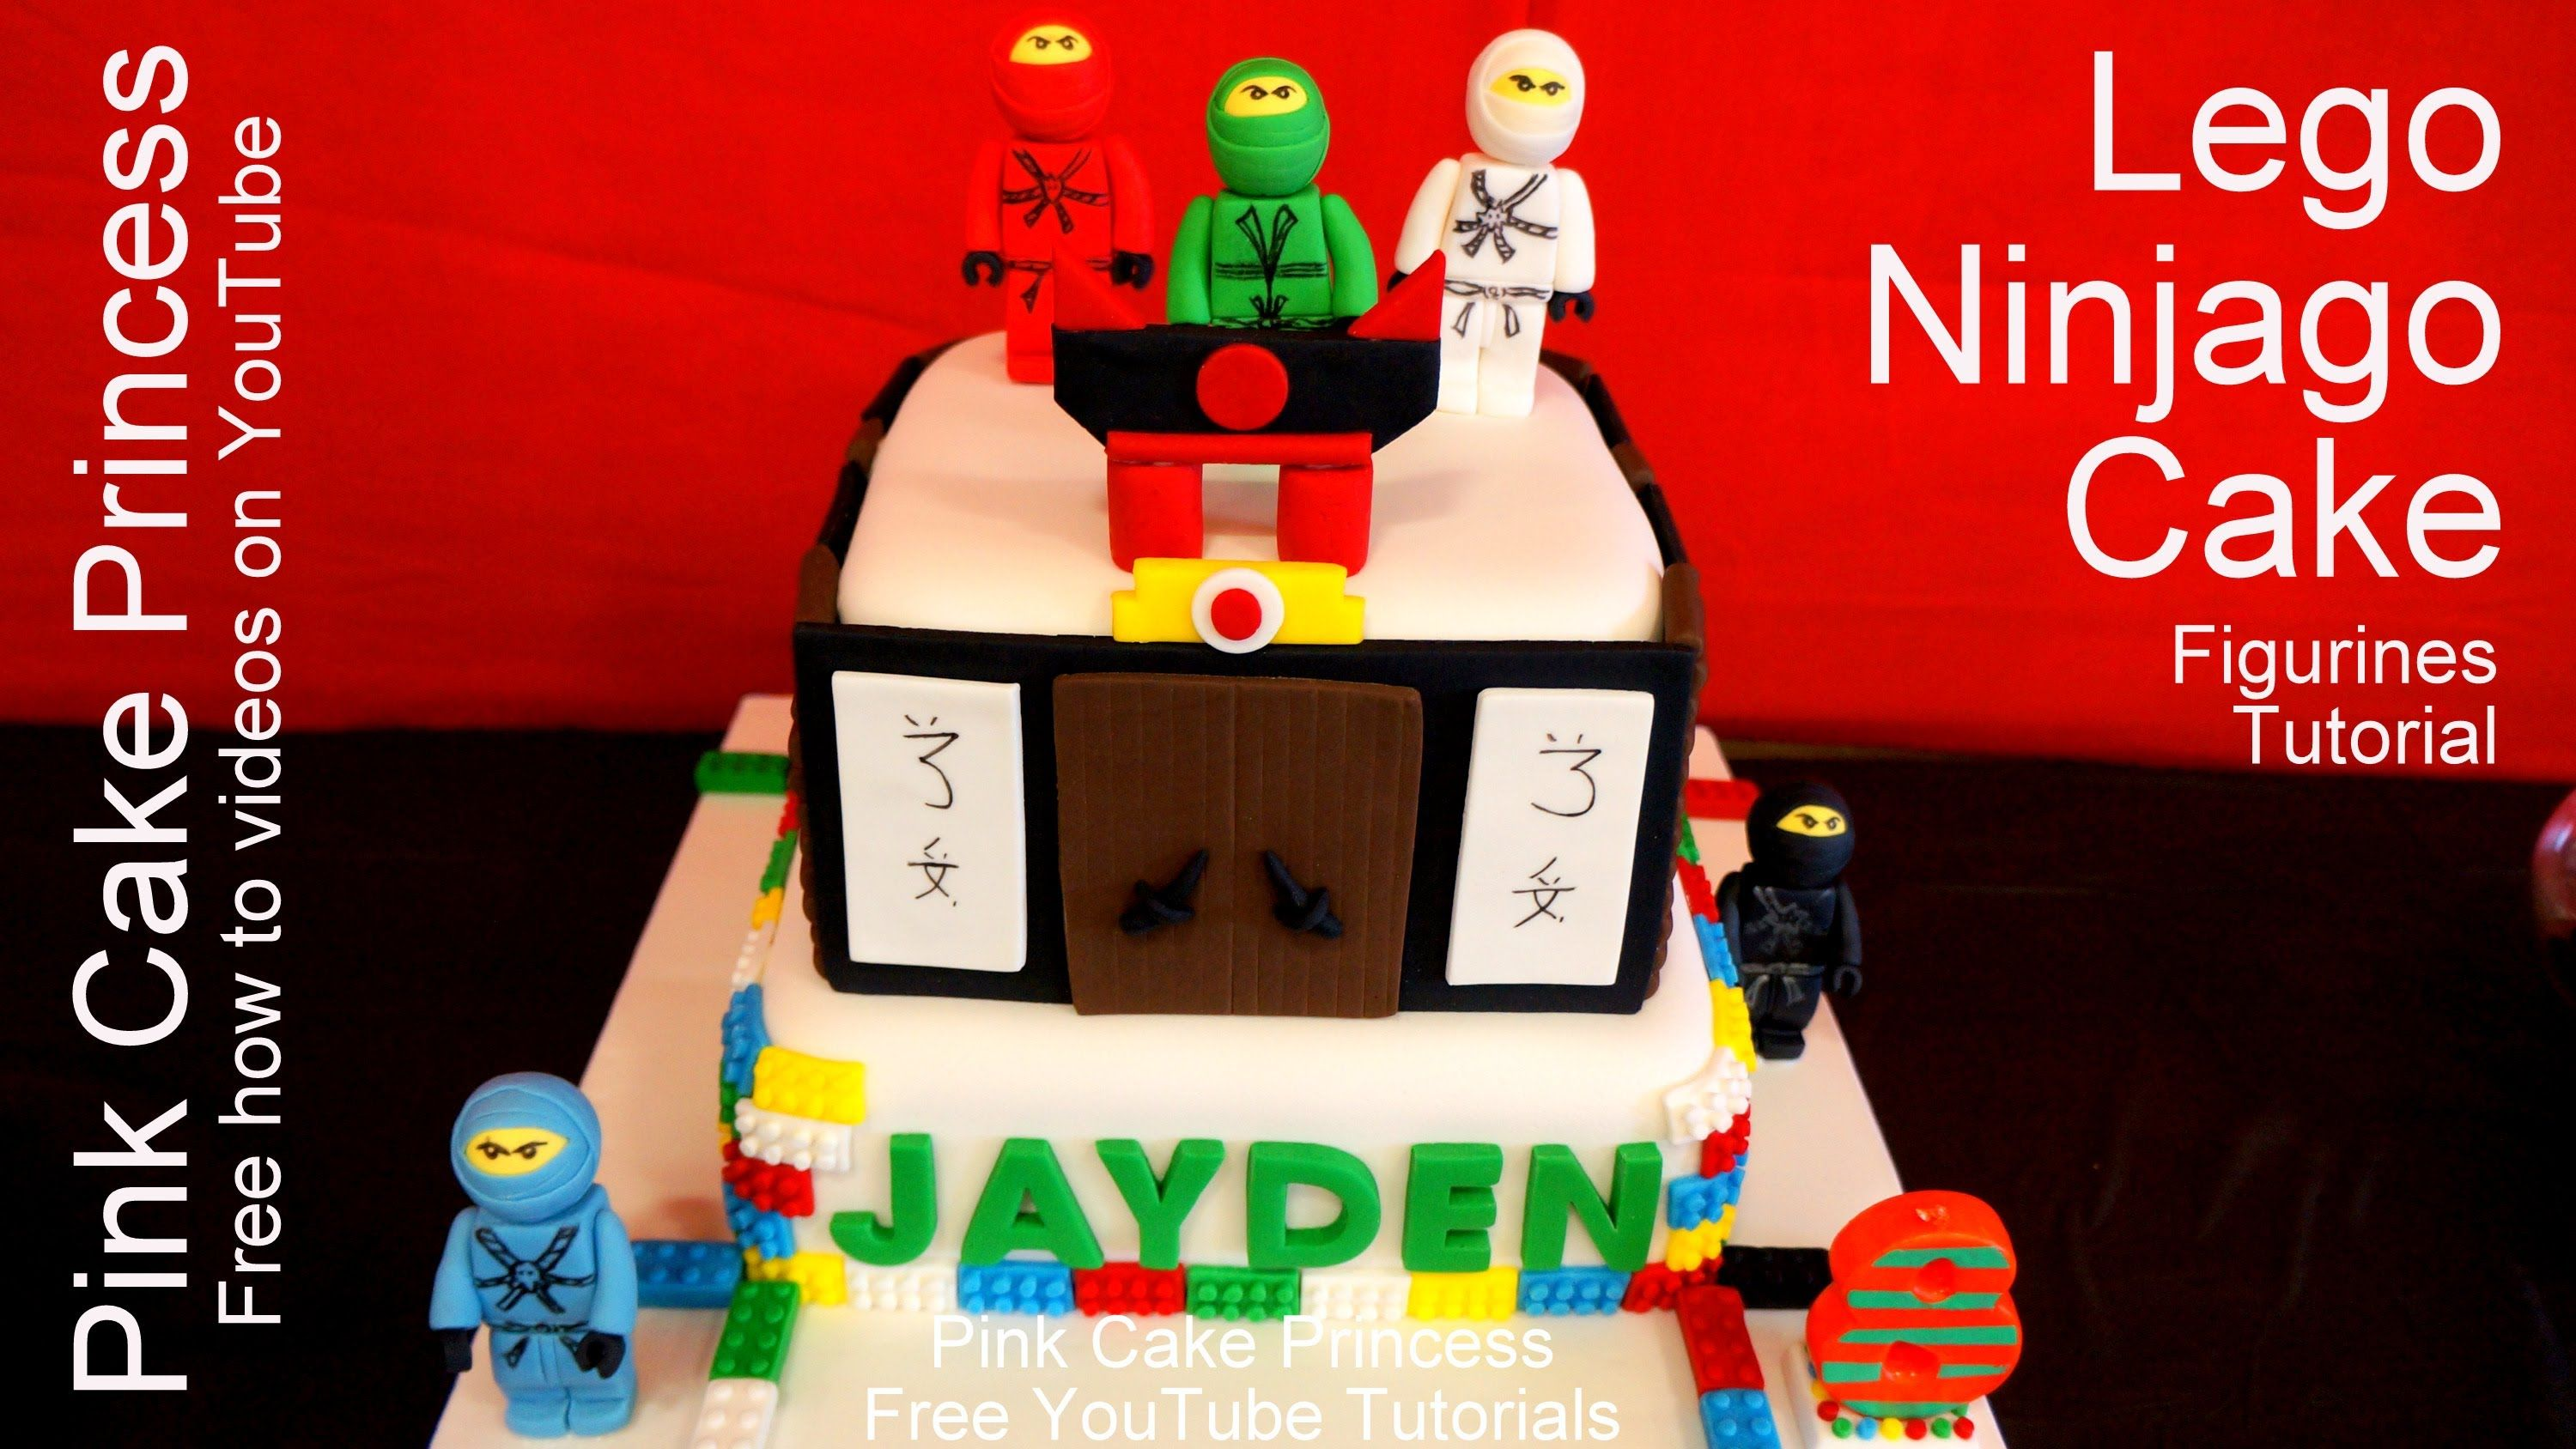 How To Make The Lego Movie Ninjago Cake Topper Figurines Youtube Tutorial